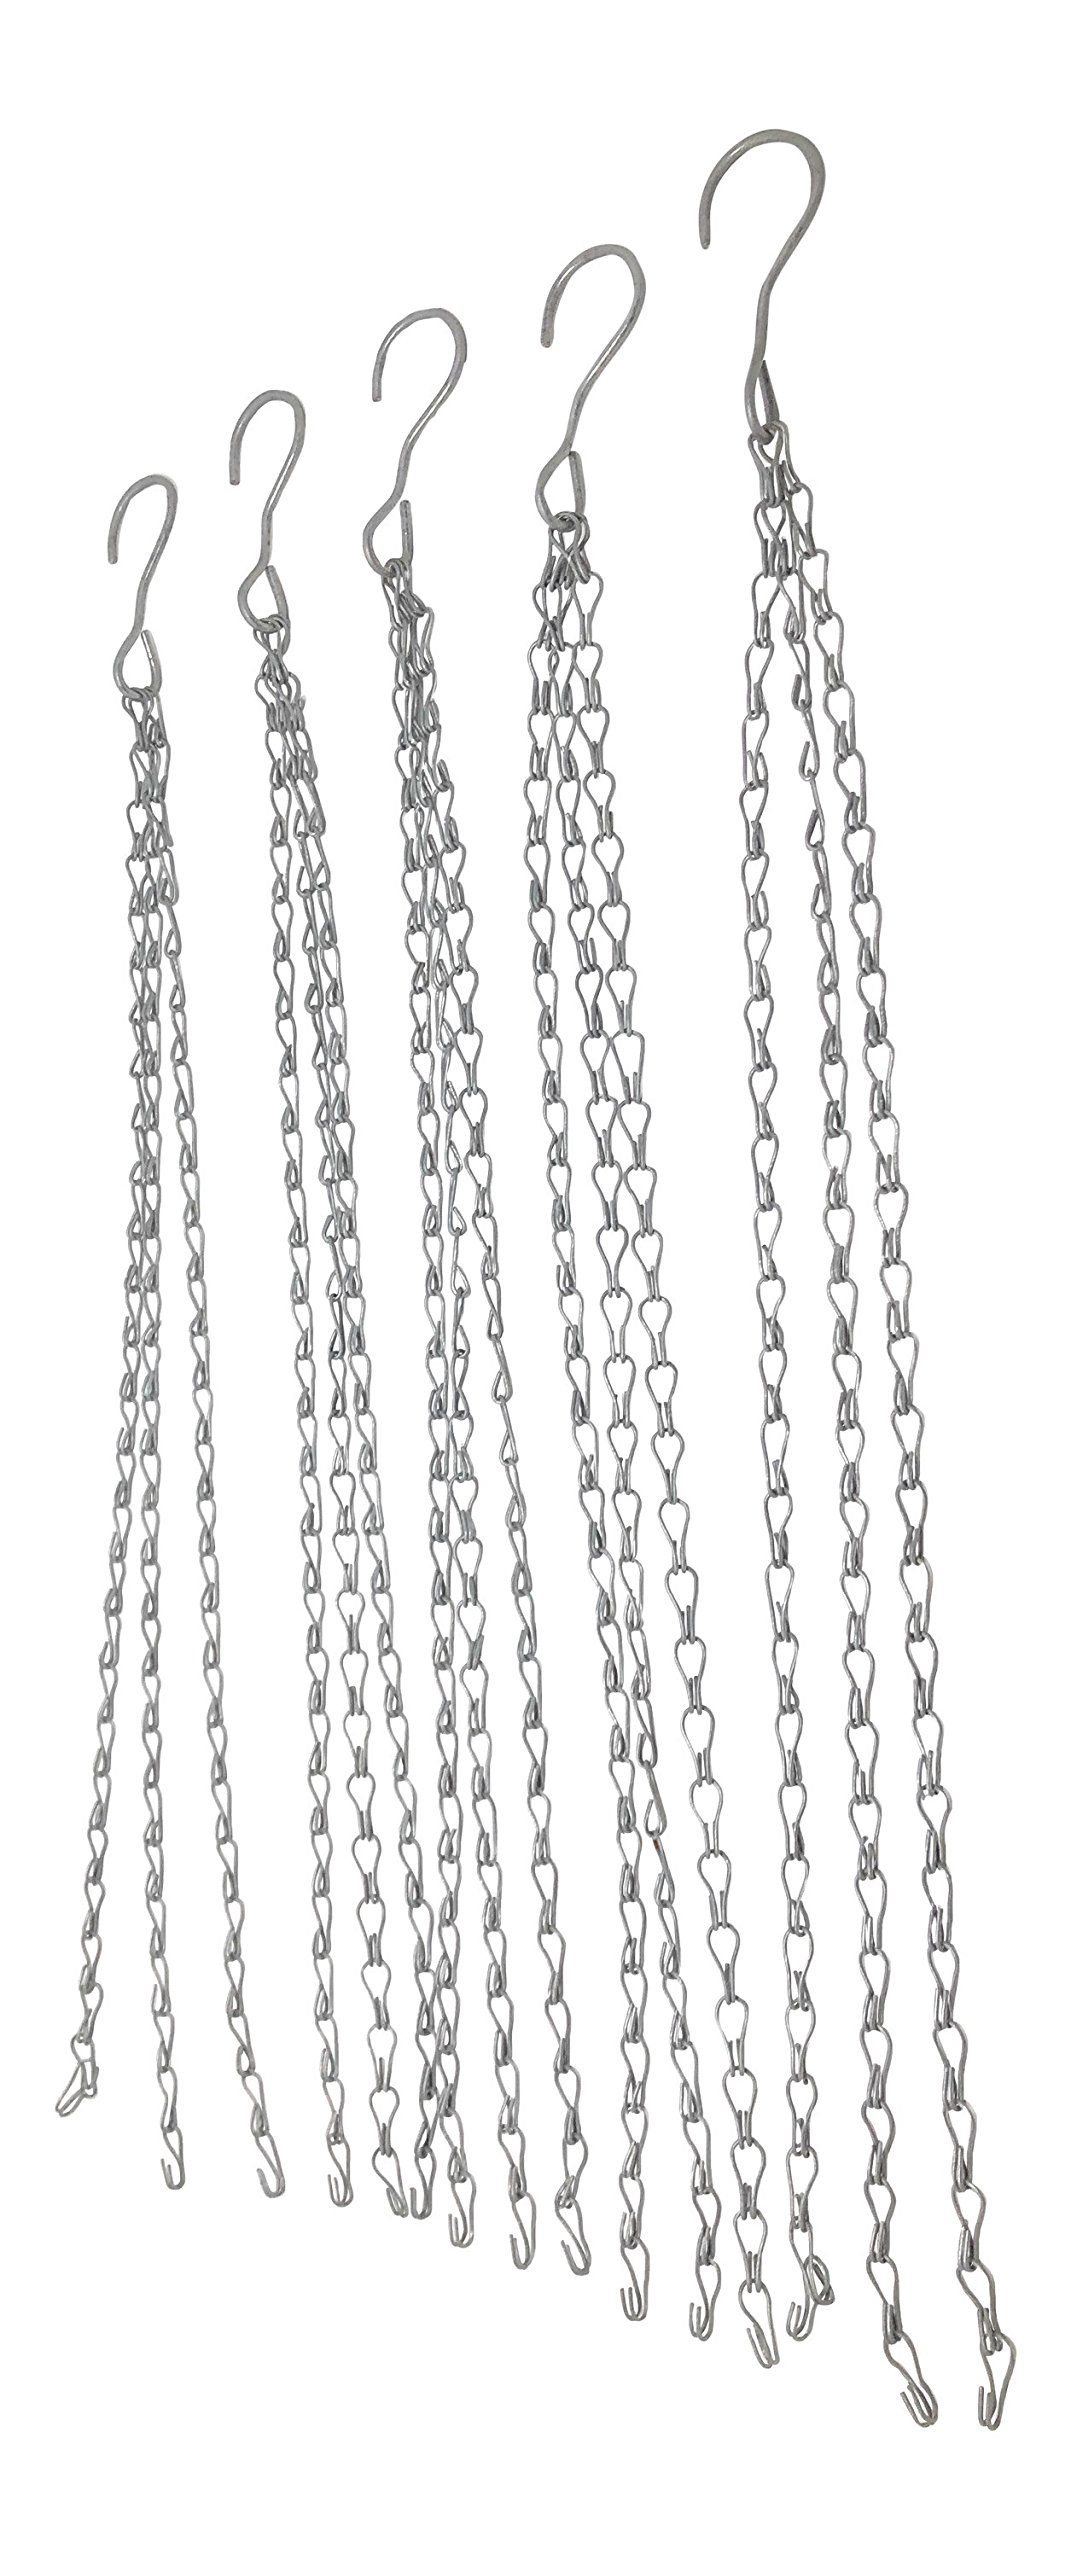 "Hanging Shop Light Chain Grow Light Chains, 24"" HEAVY DUTY with Hook-LED or Fluorescent Fixture 3-Point-Clipless Design-Galvanized-Combinable/Extendable- Multiple Use Double Jack (5 PC)"